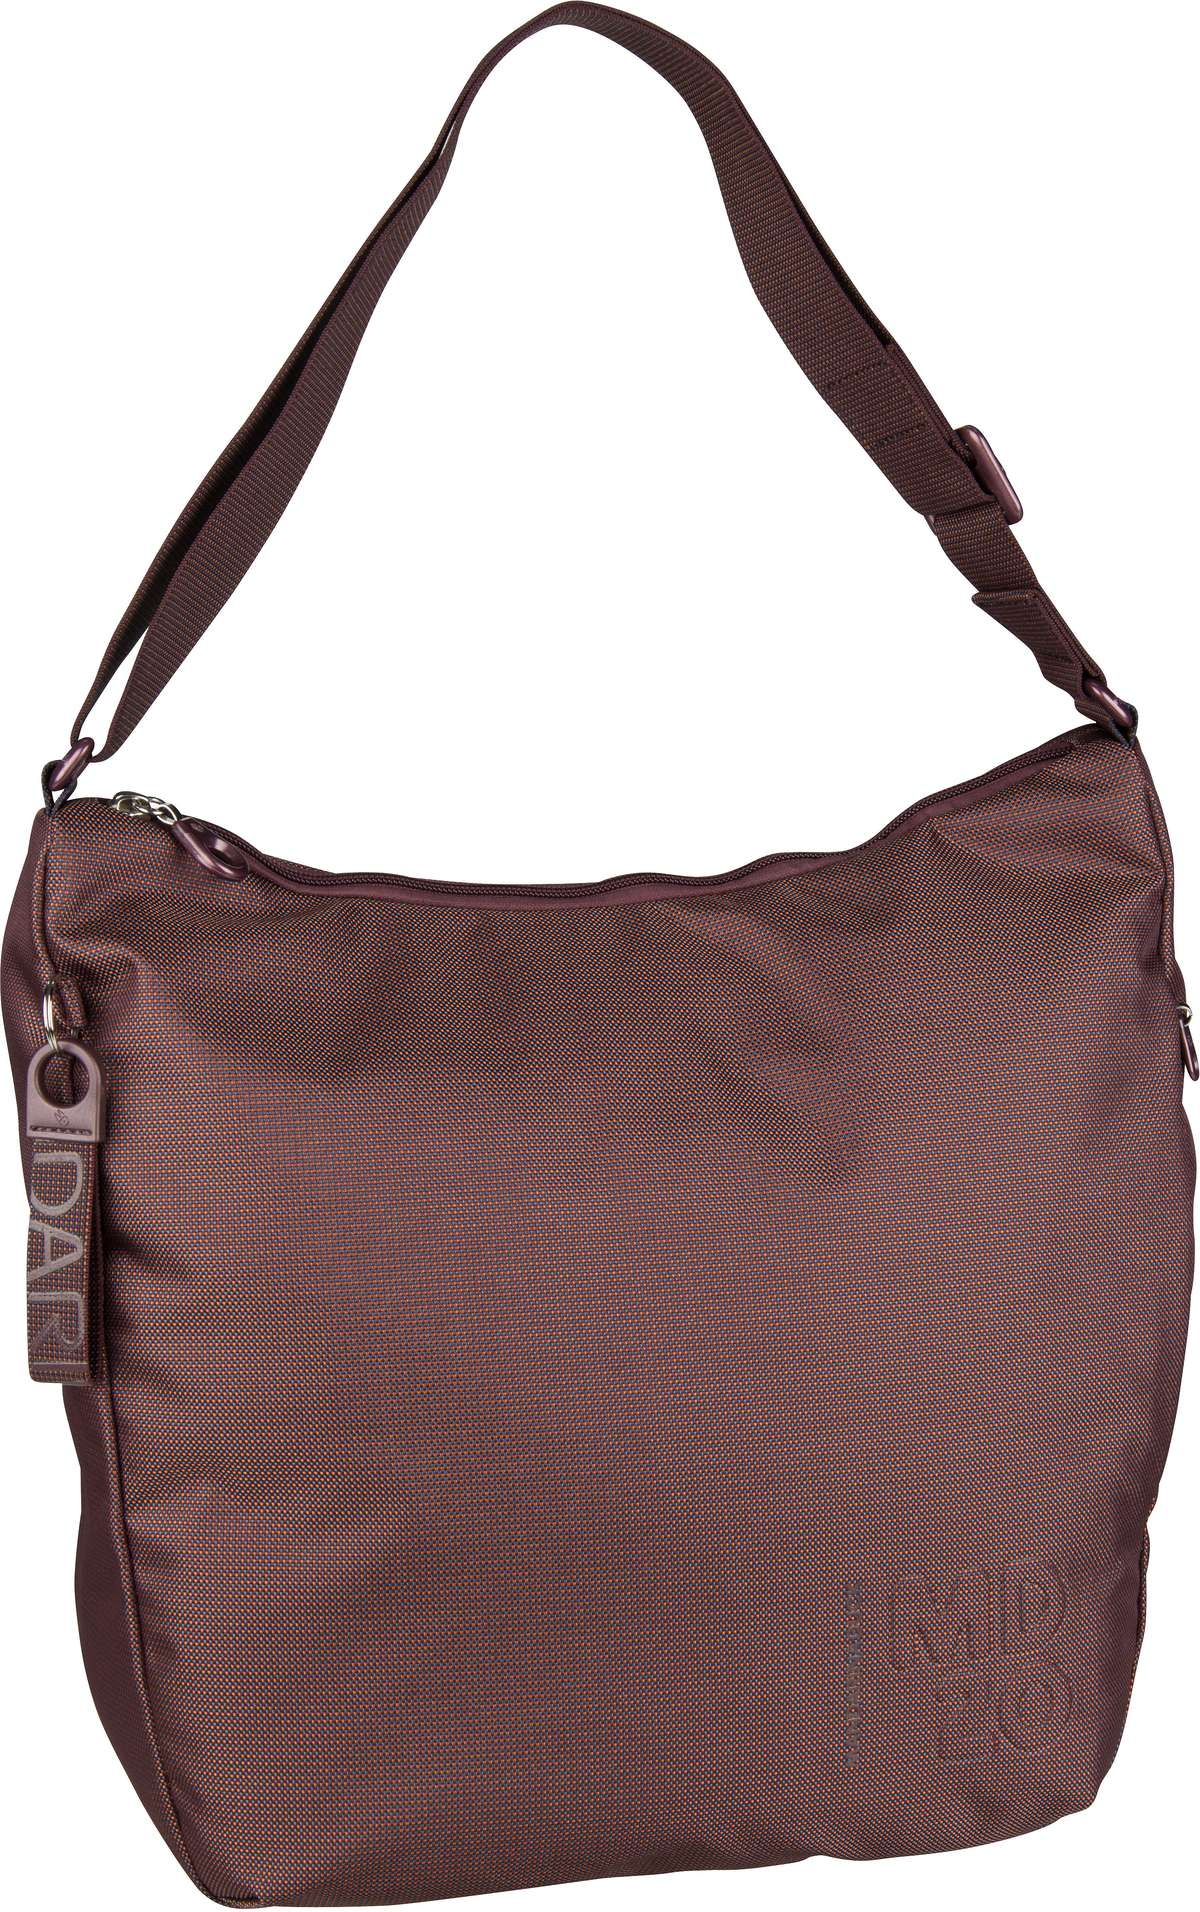 Handtasche MD20 Big Hobo QMTV2 Balsamic